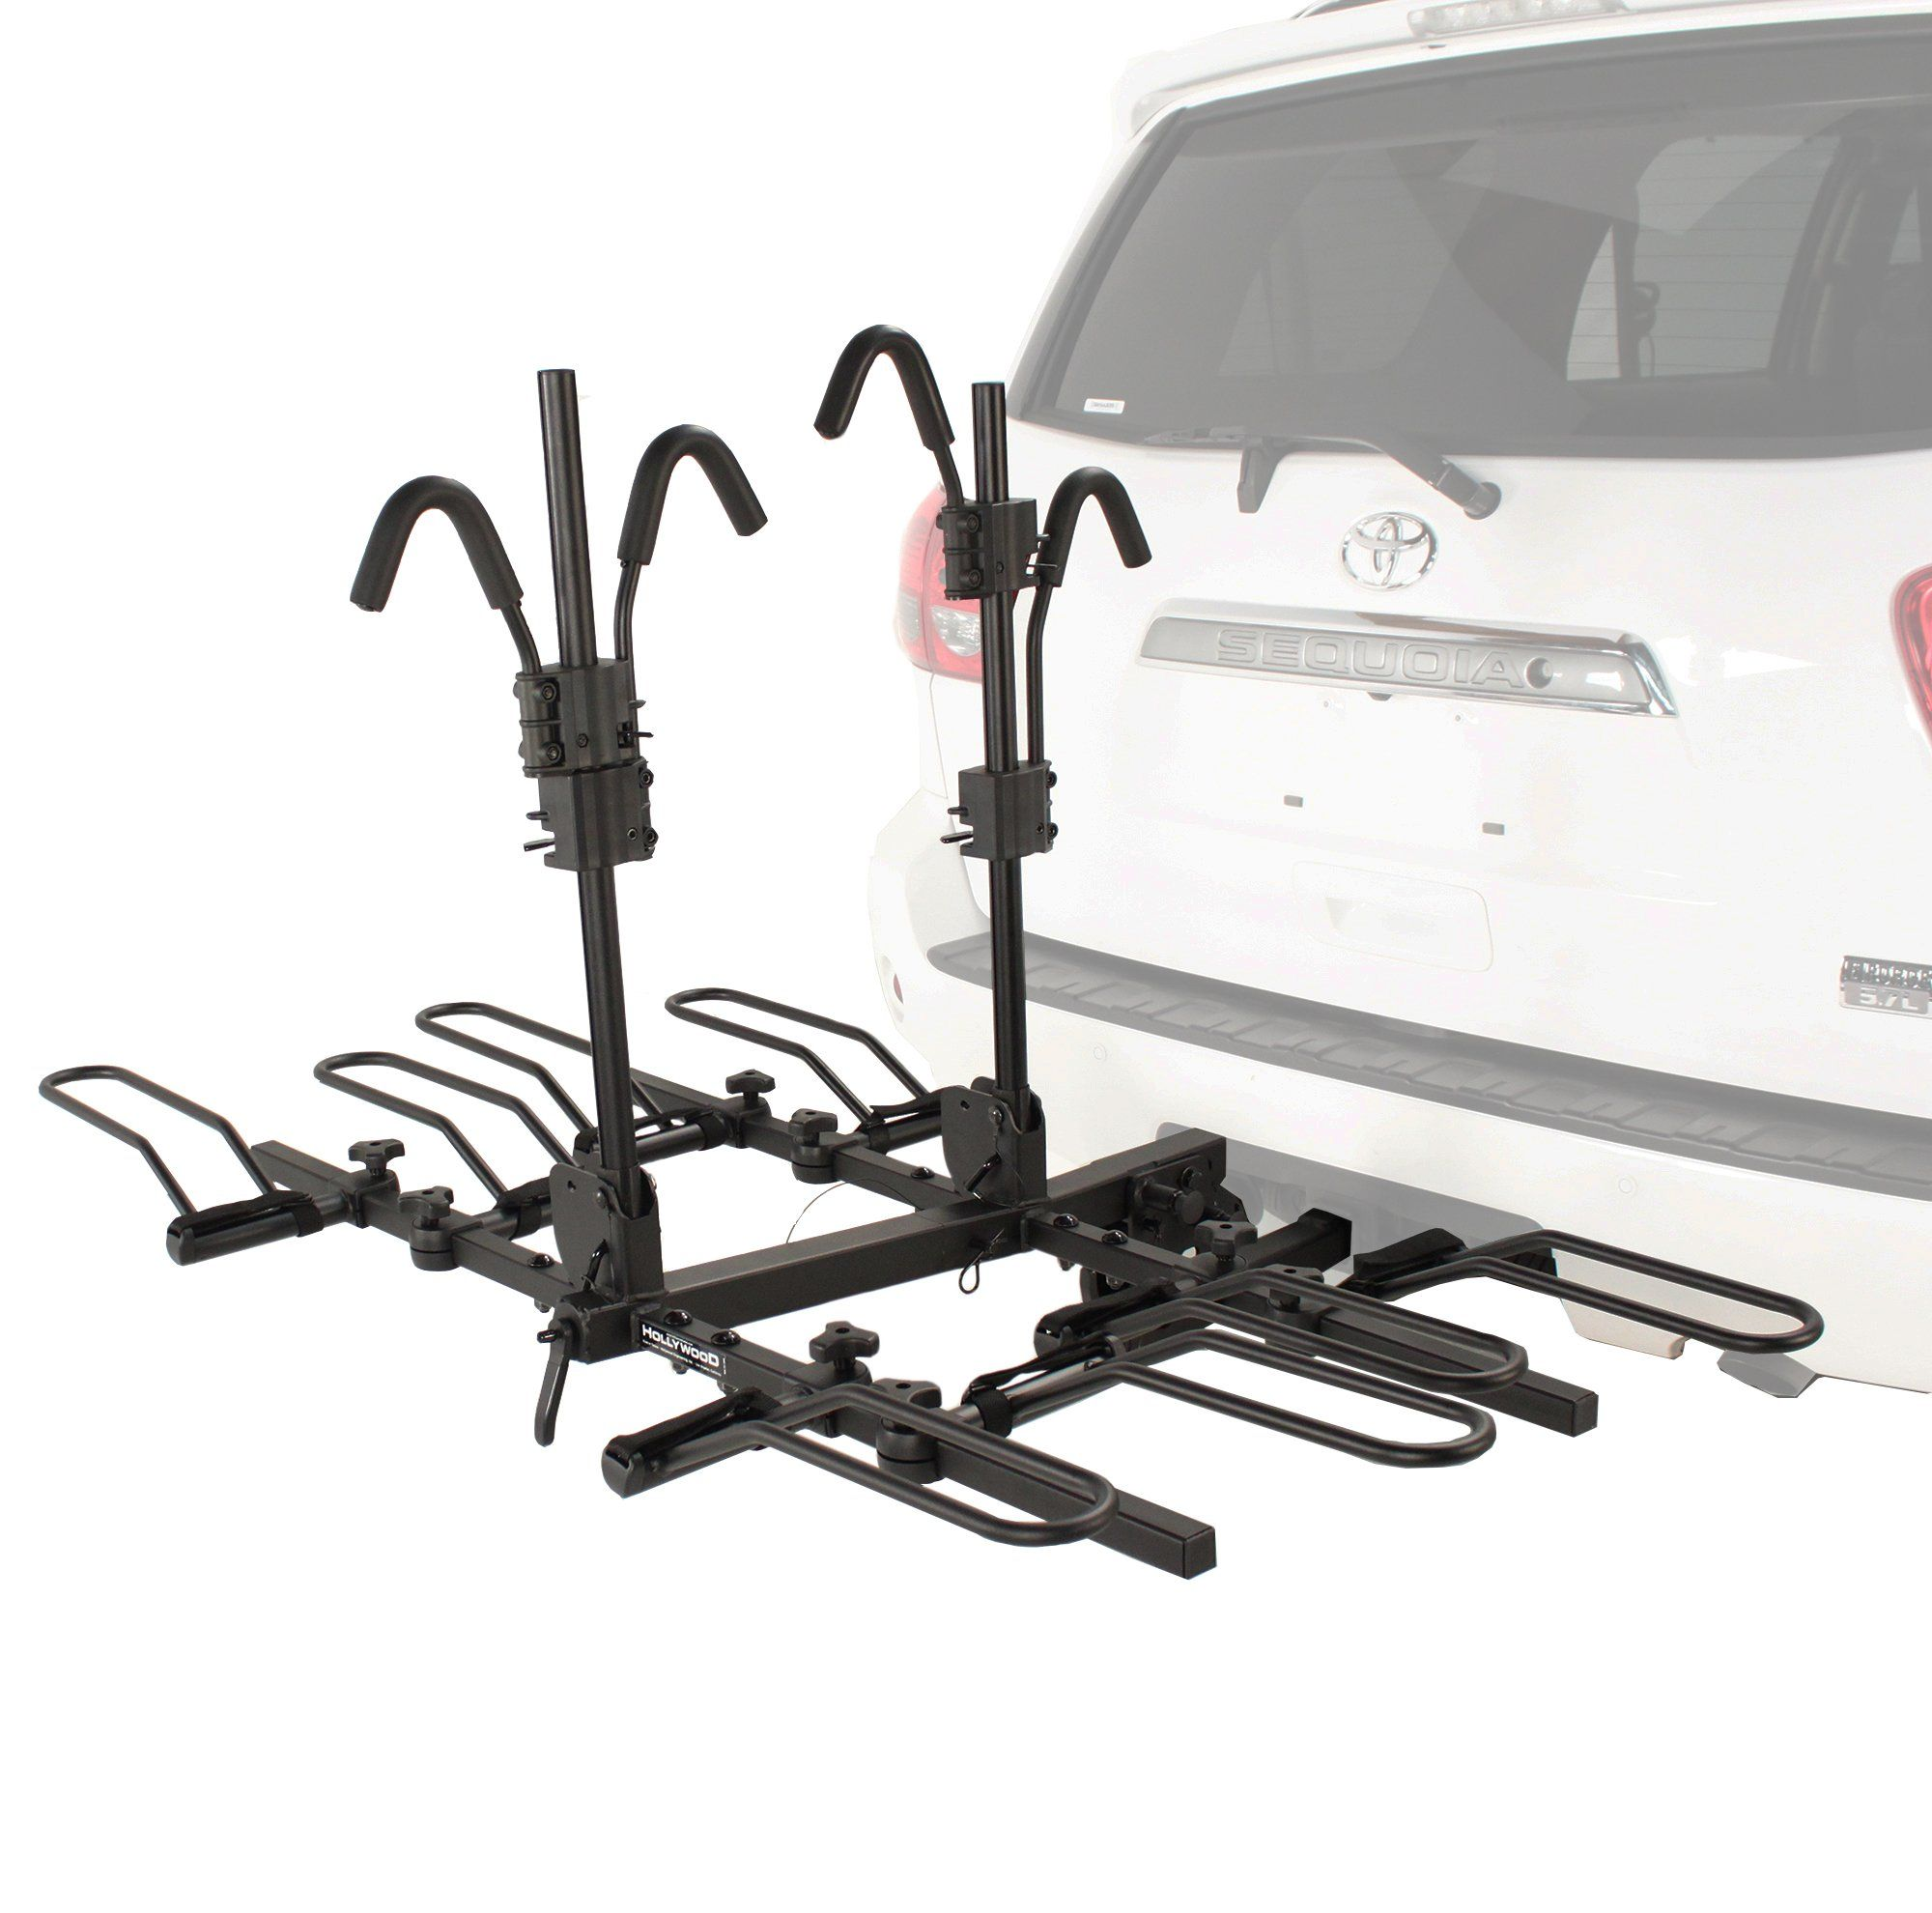 hollywood howexgirlback racks original com rack x bike cosmecol